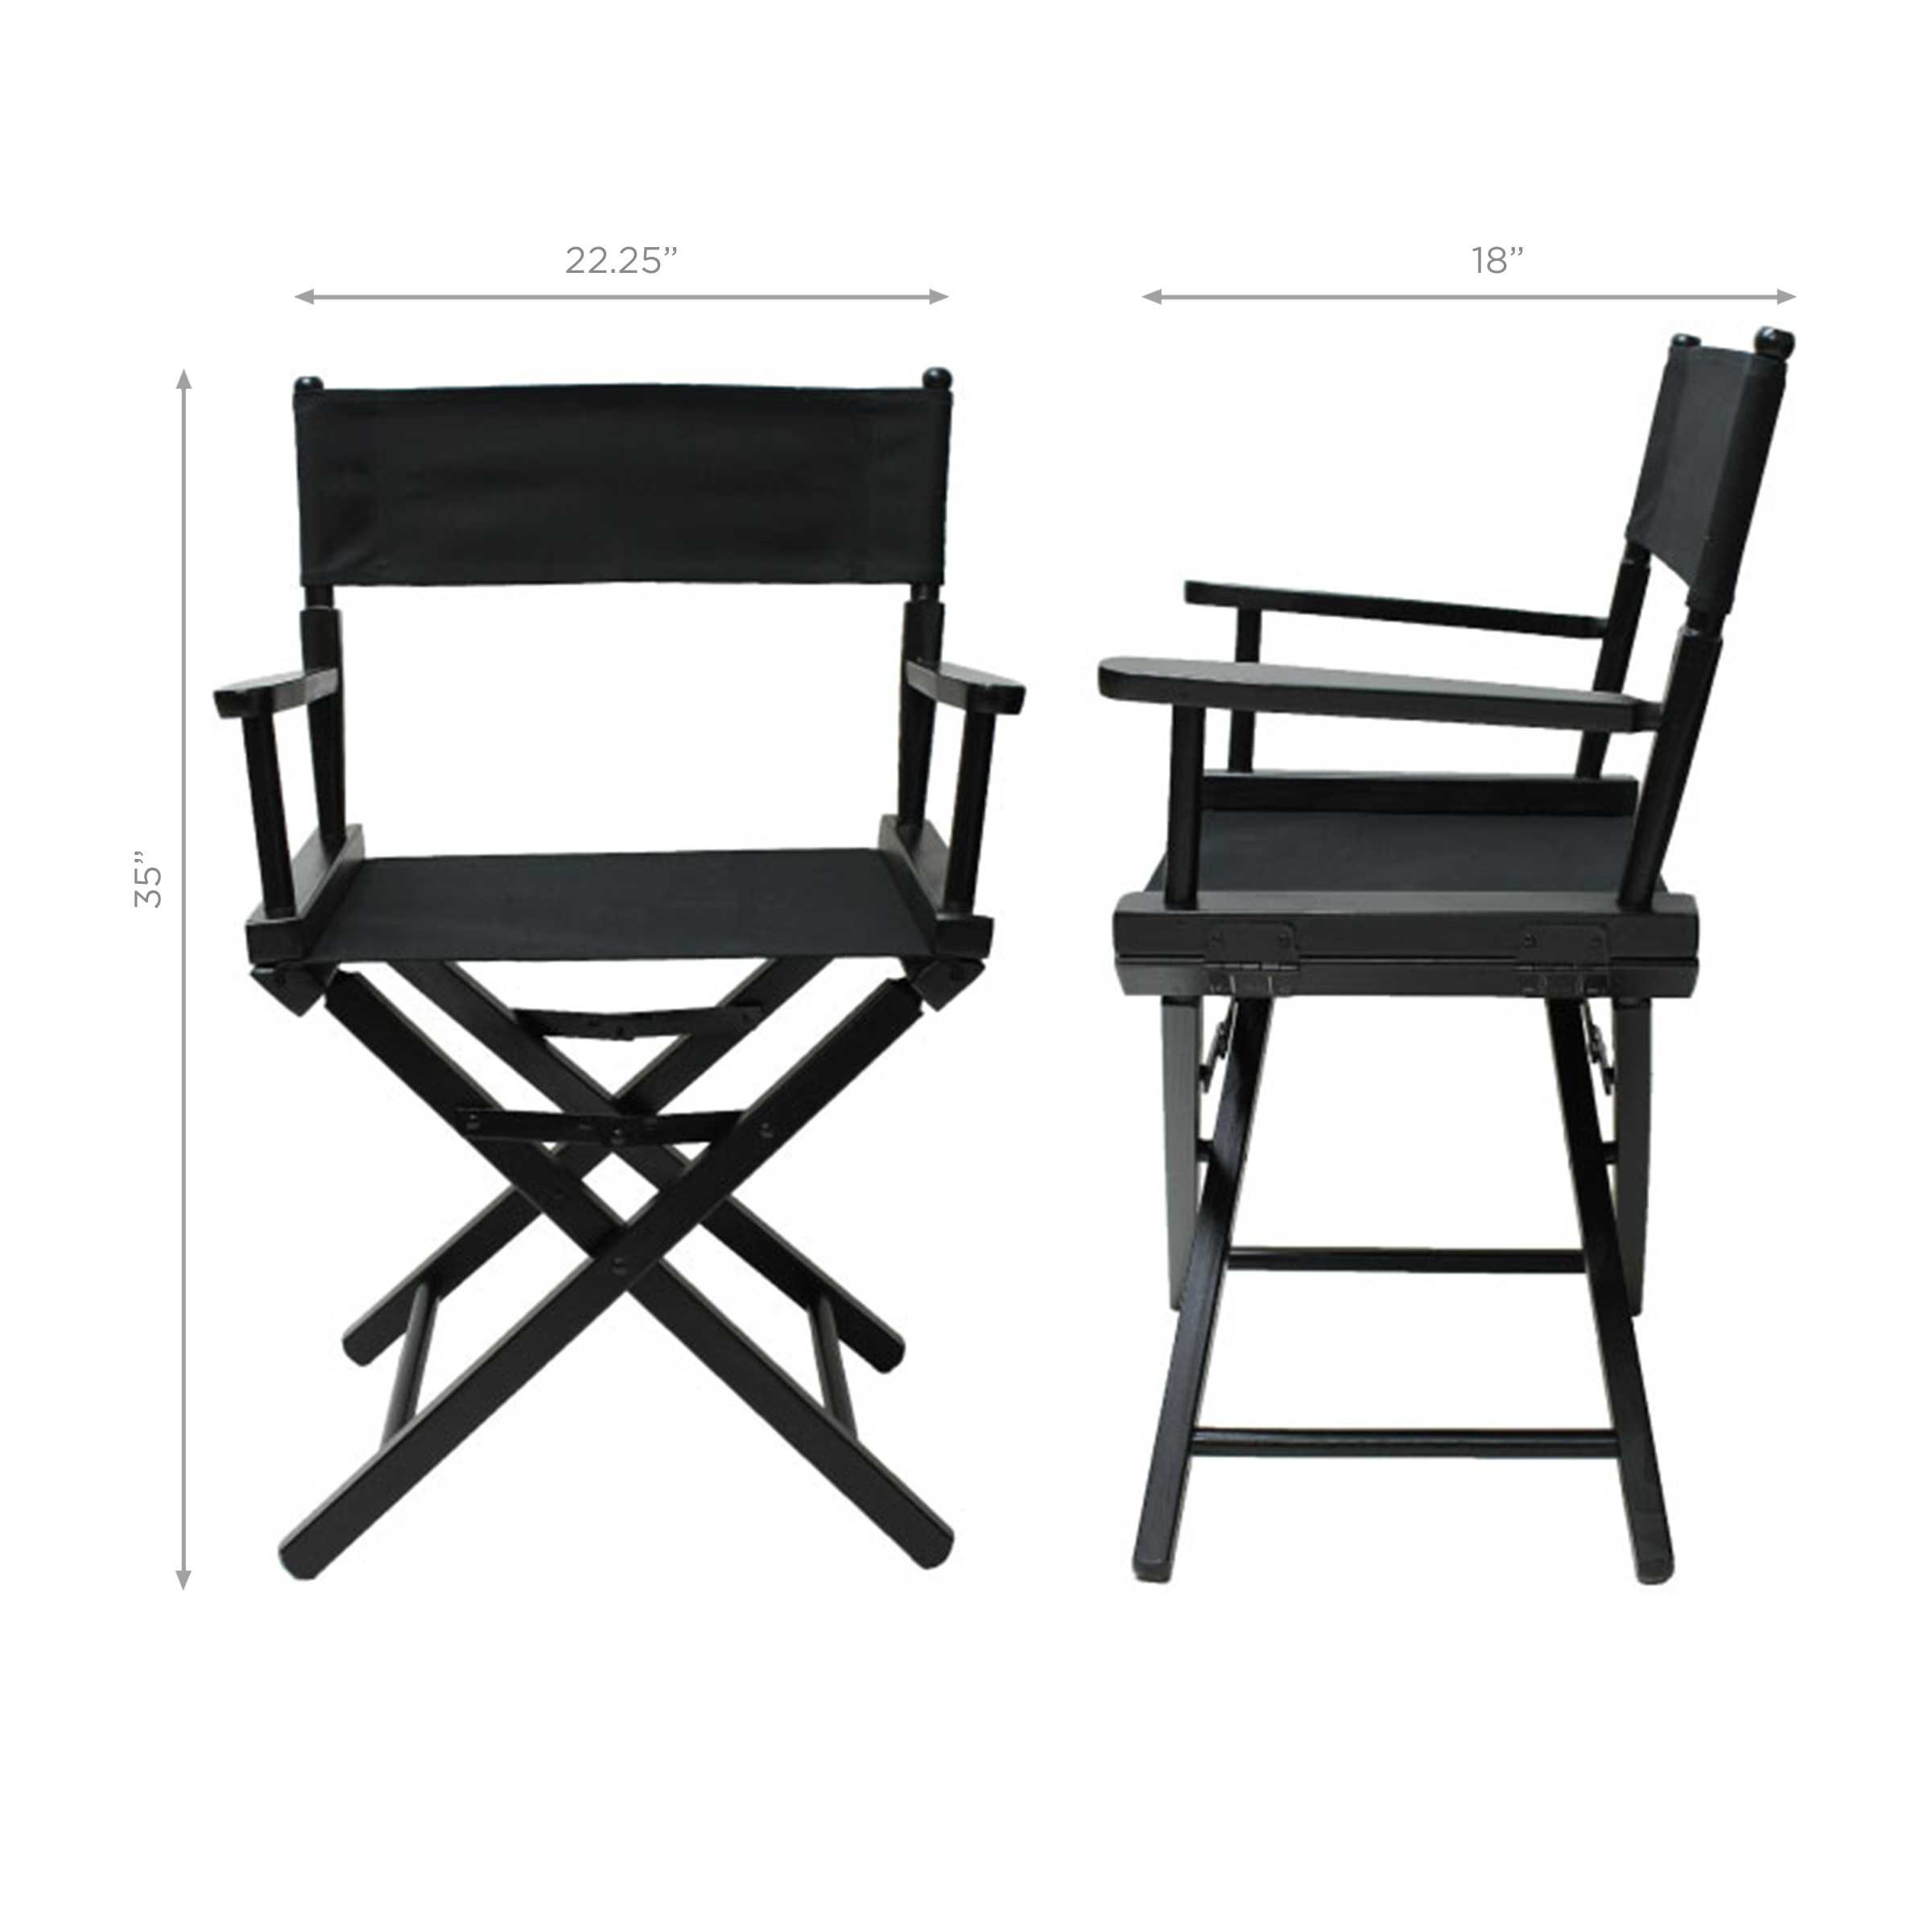 LOS ANGELES RAMS TABLE HEIGHT DIRECTORS CHAIR